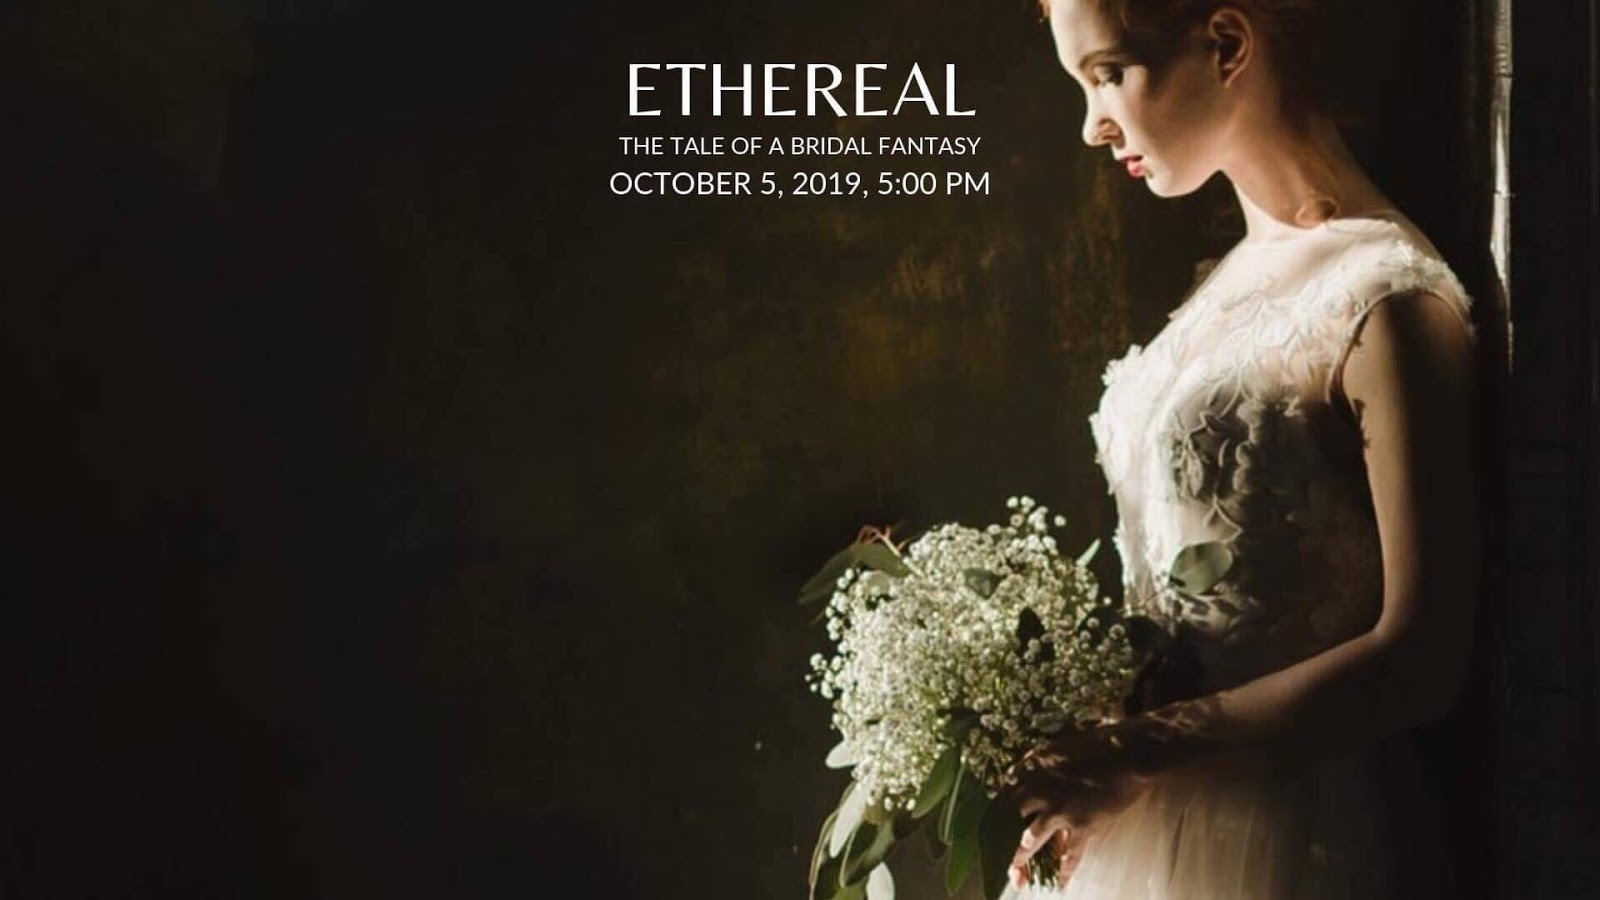 RYAN CHRIS' ETHEREAL BRIDAL FASHION SHOW FOR A CAUSE